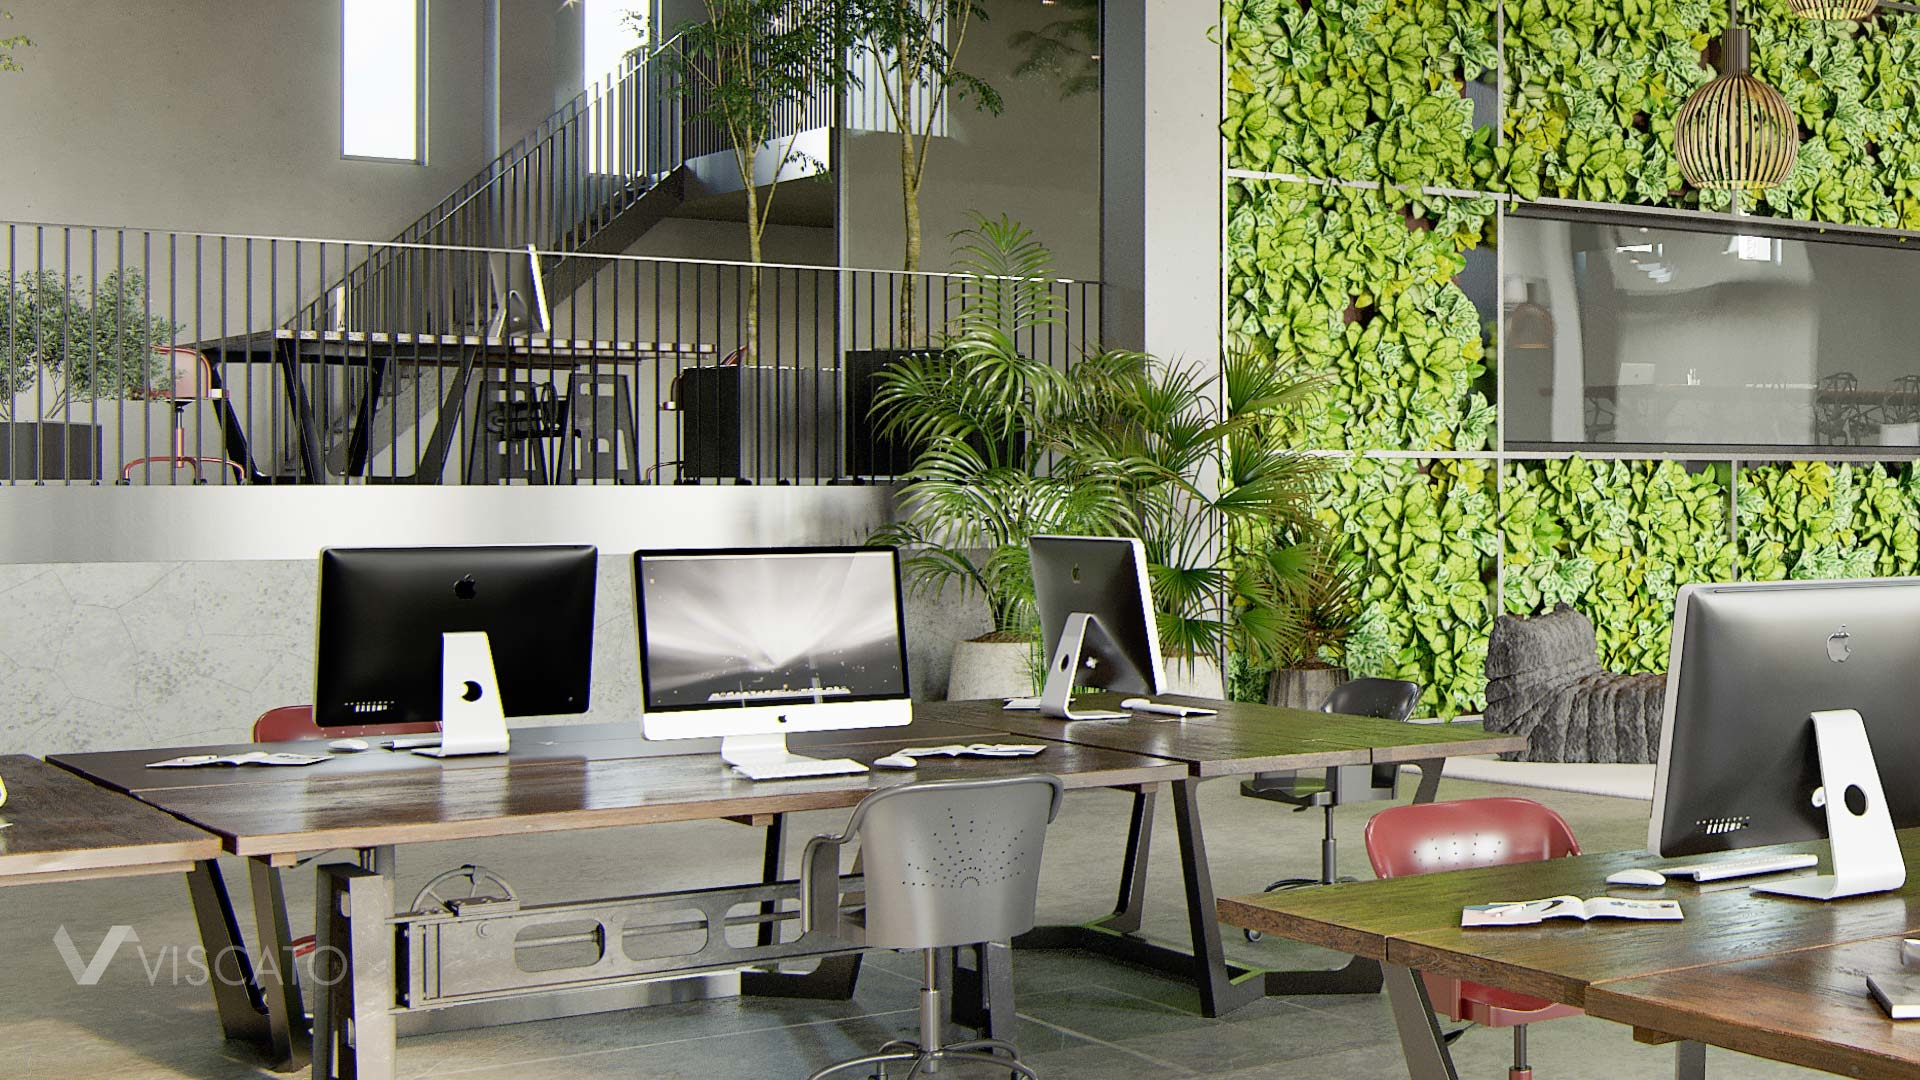 Industrial design office in 3D, Viscato